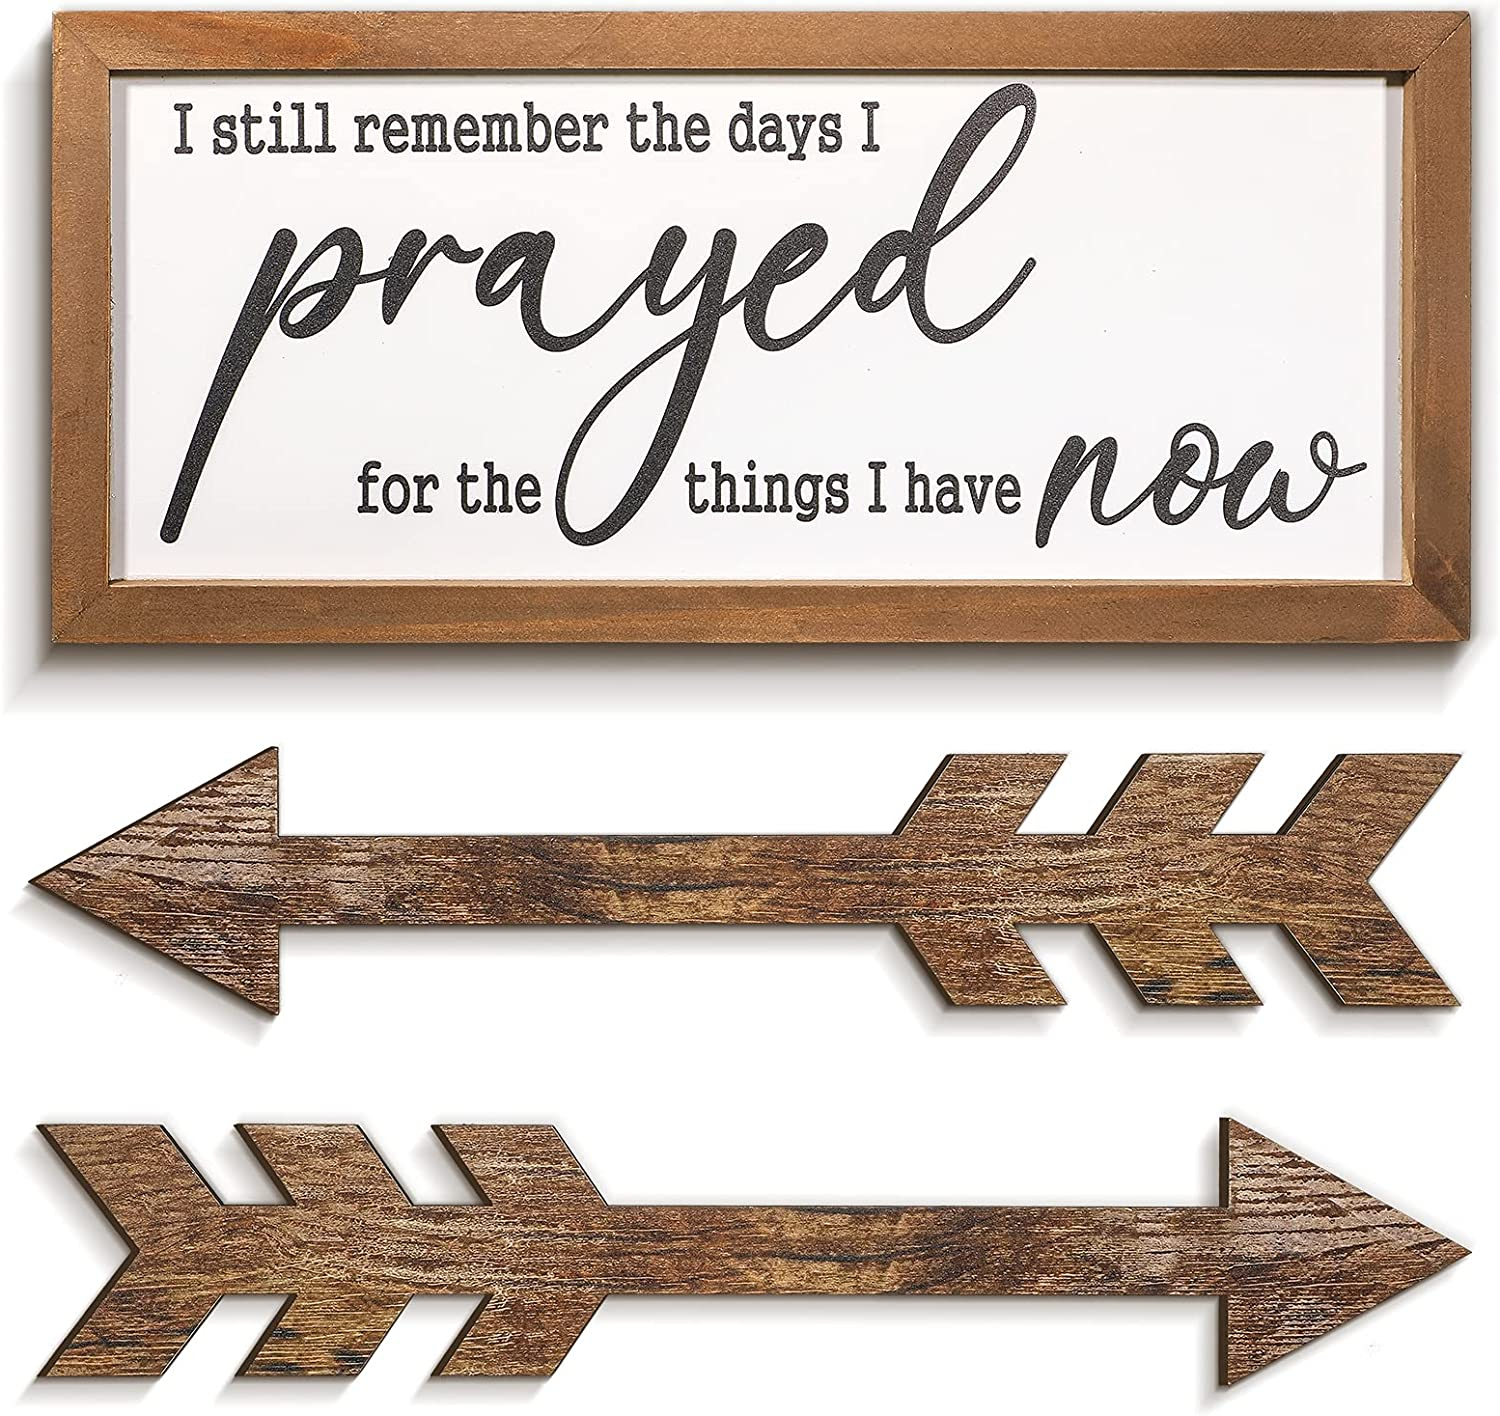 3 Pieces I Still Remember the Days I Prayed Sign and Wooden Arrow Hanging Sign Rustic Farmhouse Home Decor Sign Wall Hanging Decorations with Solid Wood Frame for Living Room Farmhouse Housewarming